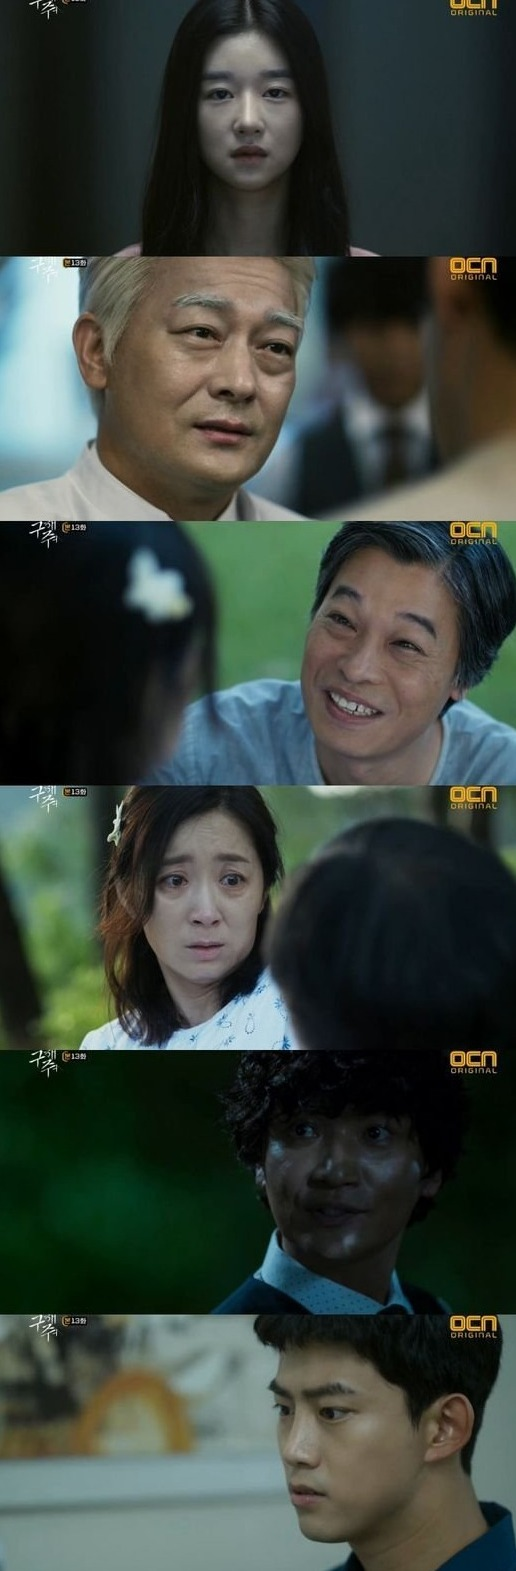 [Spoiler] Added episodes 13 and 14 captures for the Korean drama 'Save Me'